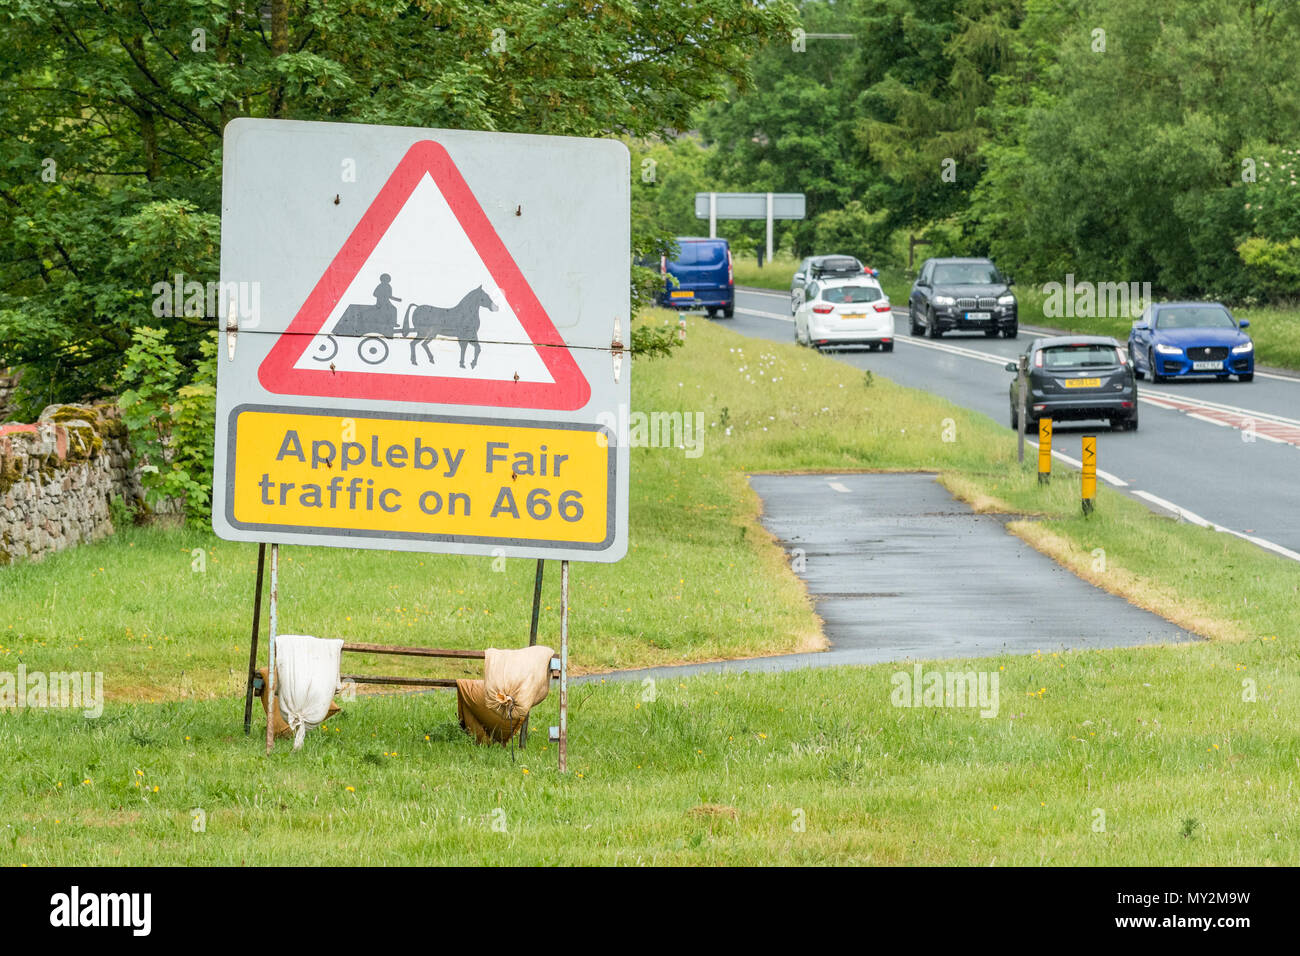 Appleby Fair traffic on A66 road traffic sign - Stock Image